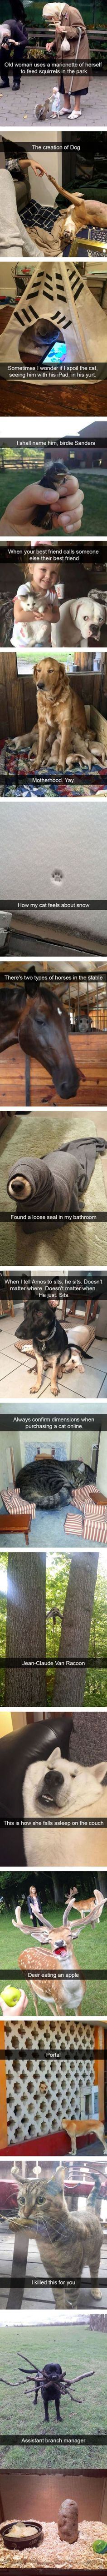 Animal Snapchats Guaranteed To Make You Laugh. Funny dogs